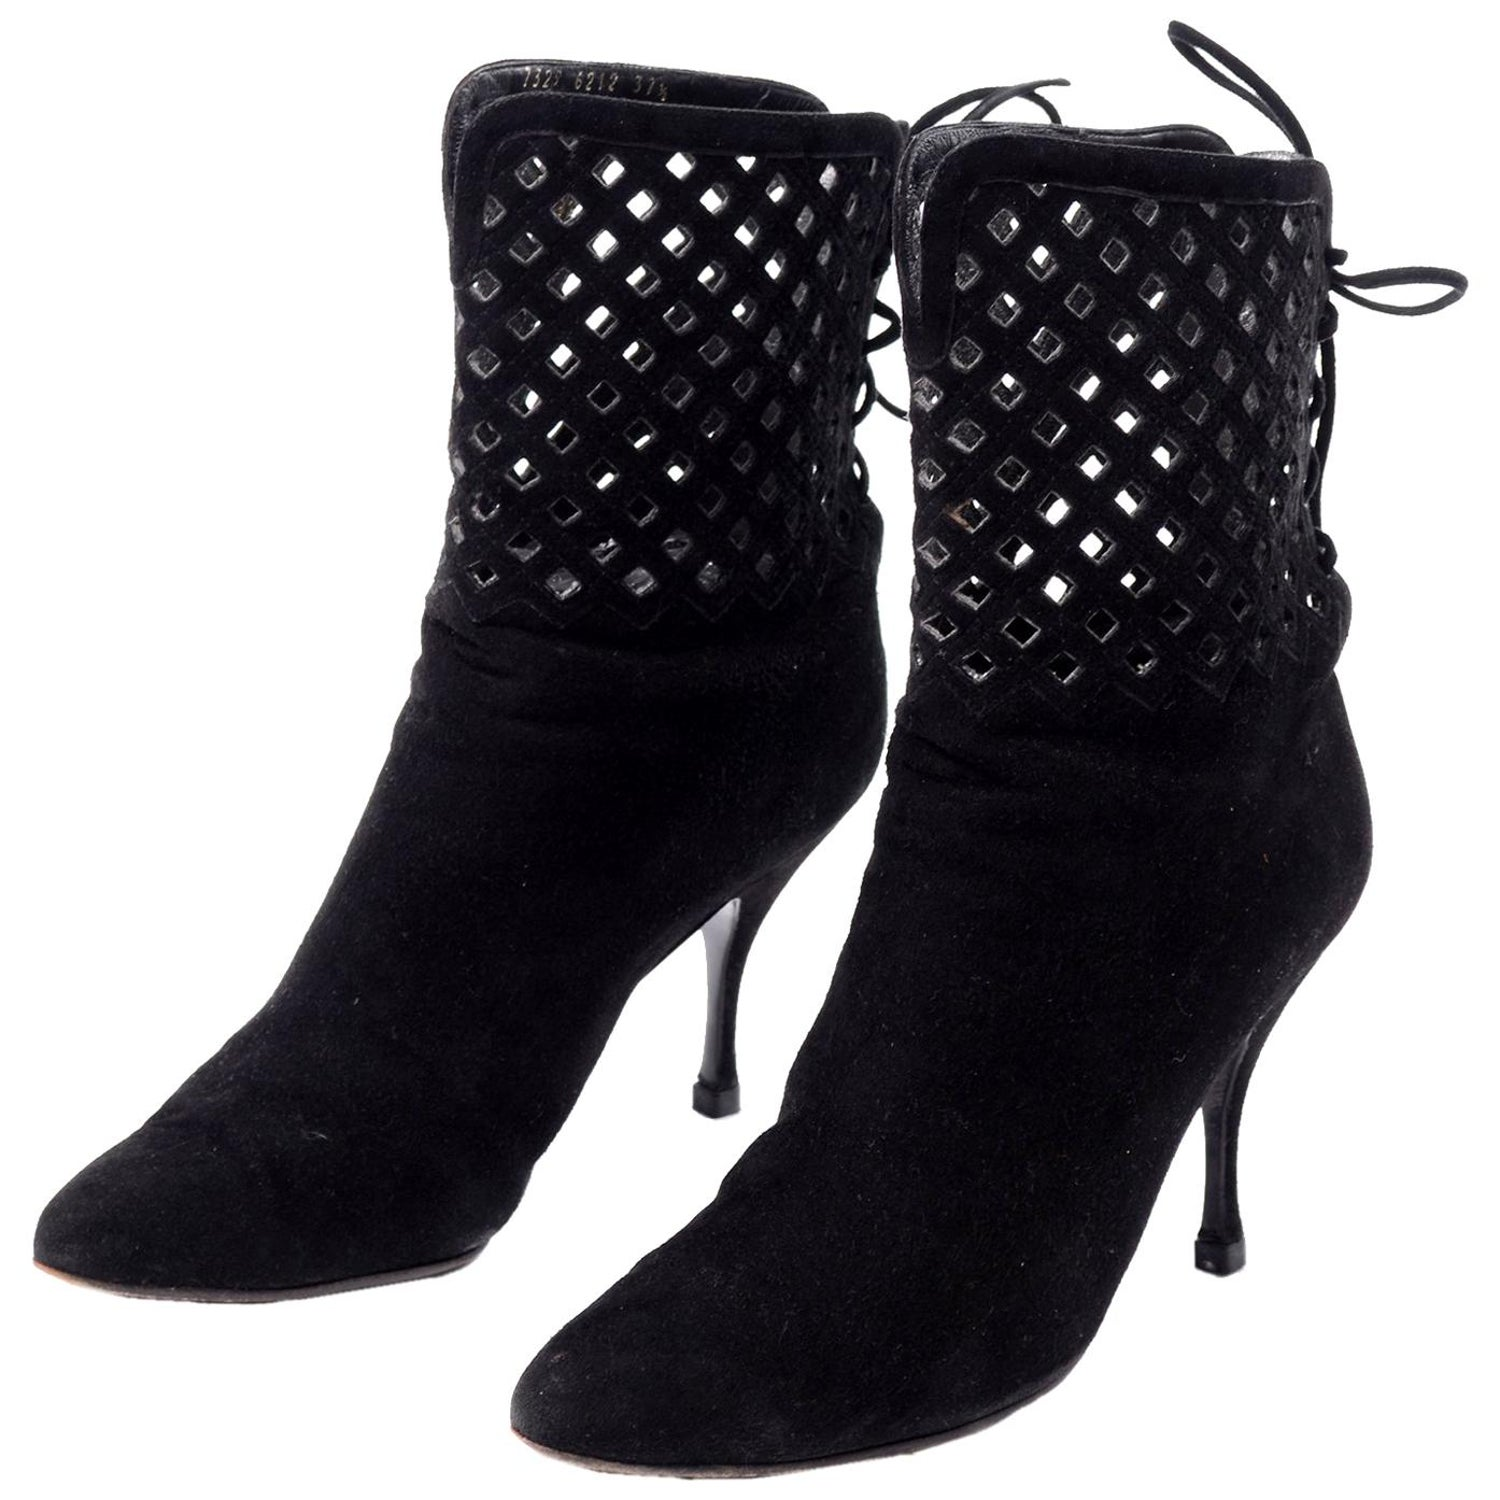 99bf4c114b5 Vintage Alaia Black Suede Boots in Cutout Corset Style Lace Up Booties Size  37.5